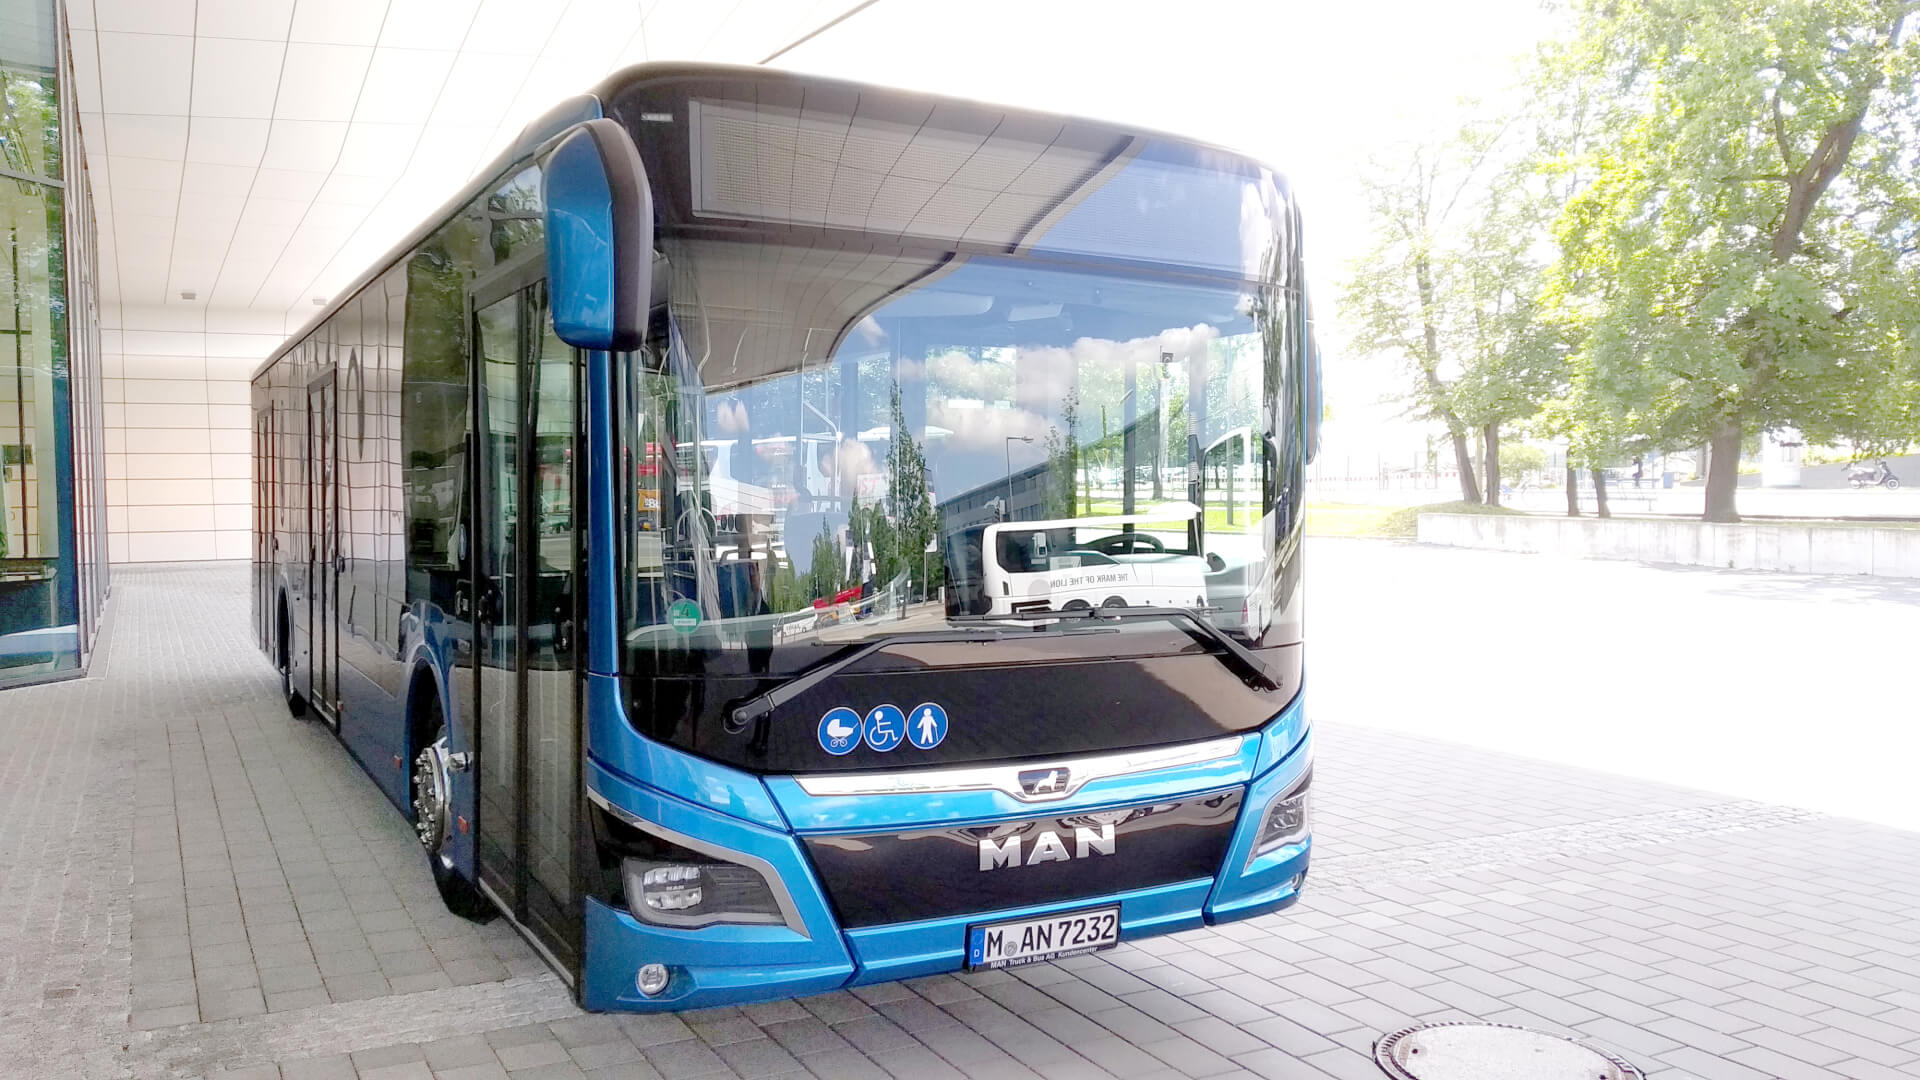 Bus by MAN, Blue